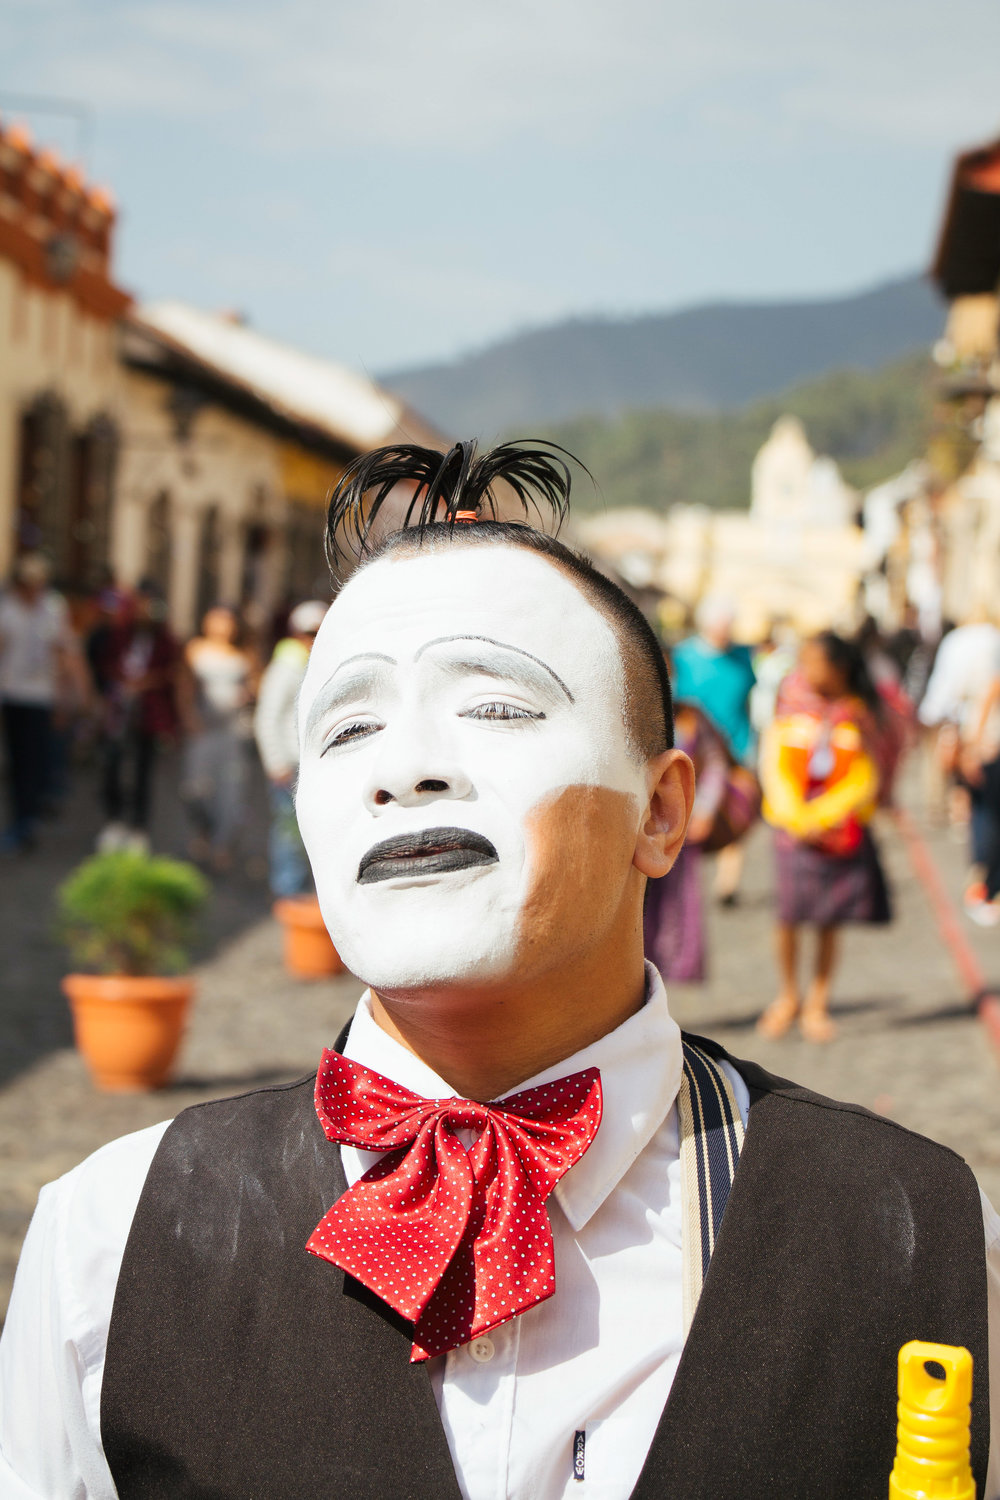 JUAN ESTUARDO TACEN PEREZ POSES DURING A PERFORMANCE ON 5A AVENIDA NORTE IN ANTIGUA, GUATEMALA JAN. 7. TACEN INTENTIONALLY DOES NOT PAINT ONE QUARTER OF HIS LEFT CHEEK TO CREATE A NEW PERSPECTIVE AND OUTLOOK ON STREET PERFORMERS.